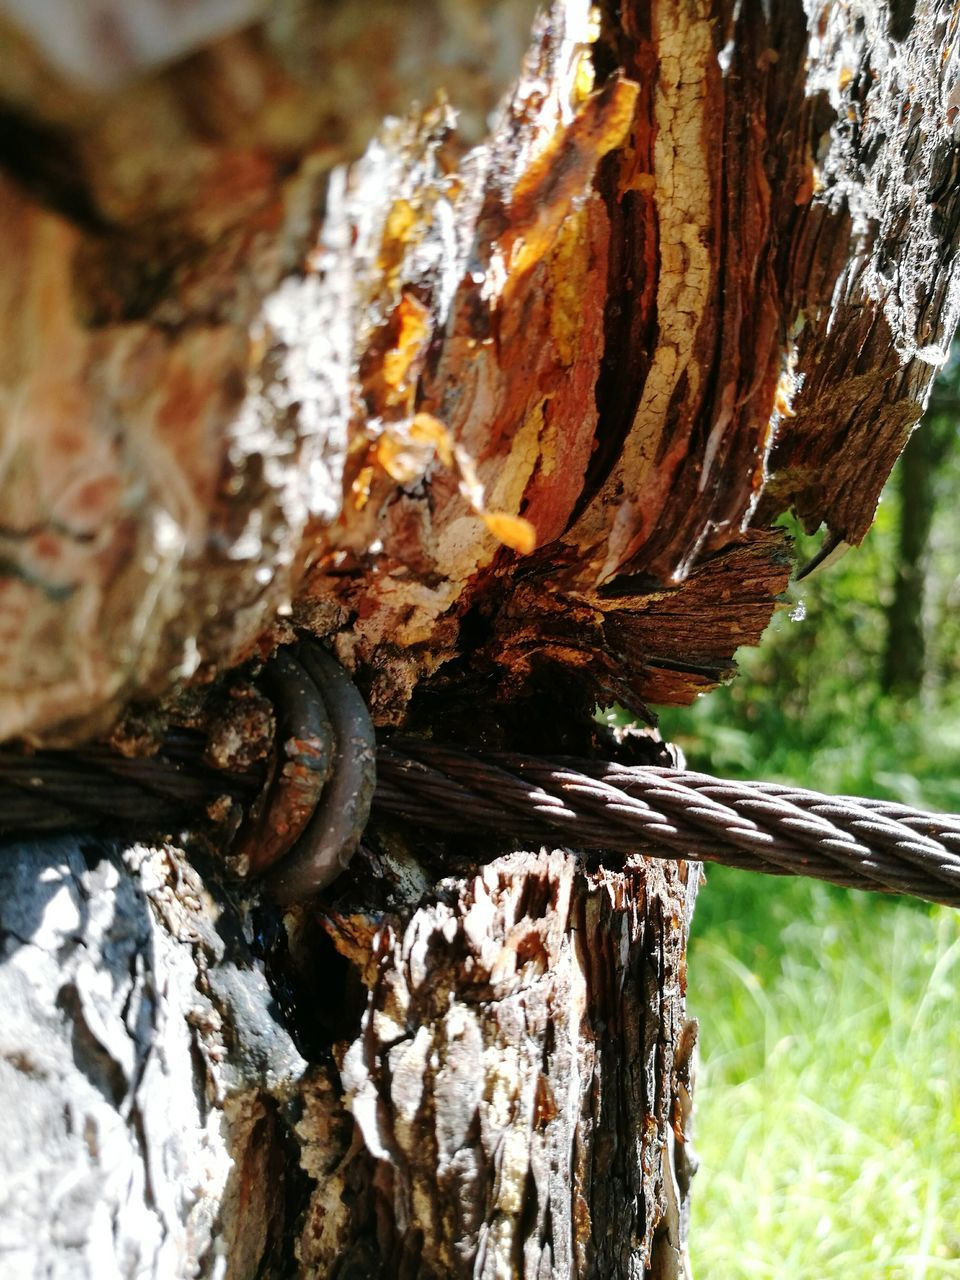 tree trunk, tree, textured, rough, wood - material, day, no people, close-up, outdoors, weathered, bark, focus on foreground, nature, knotted wood, dead tree